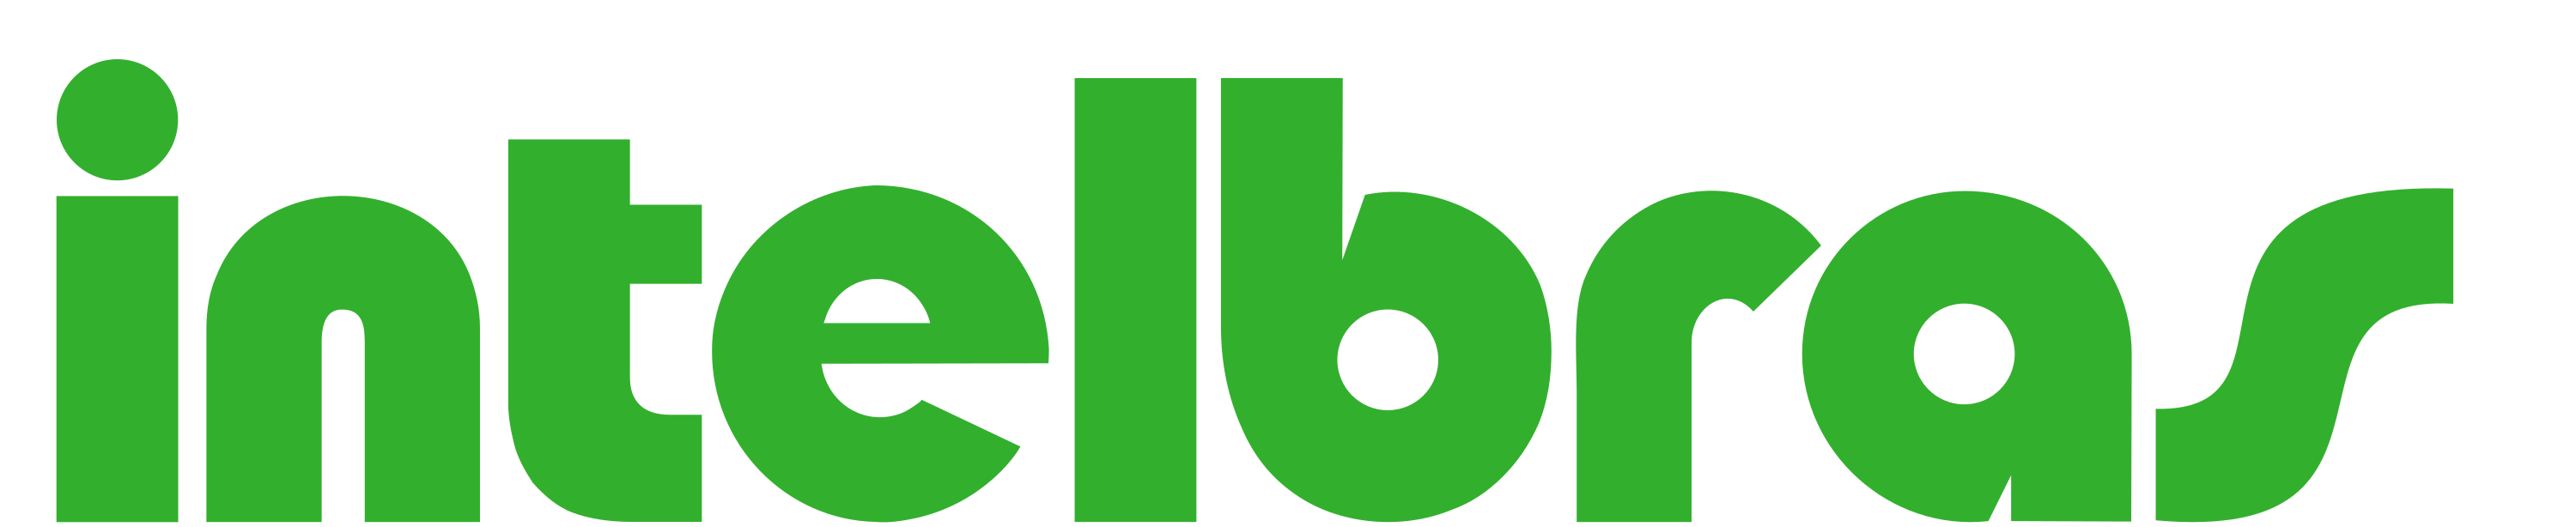 Intelbras logo.